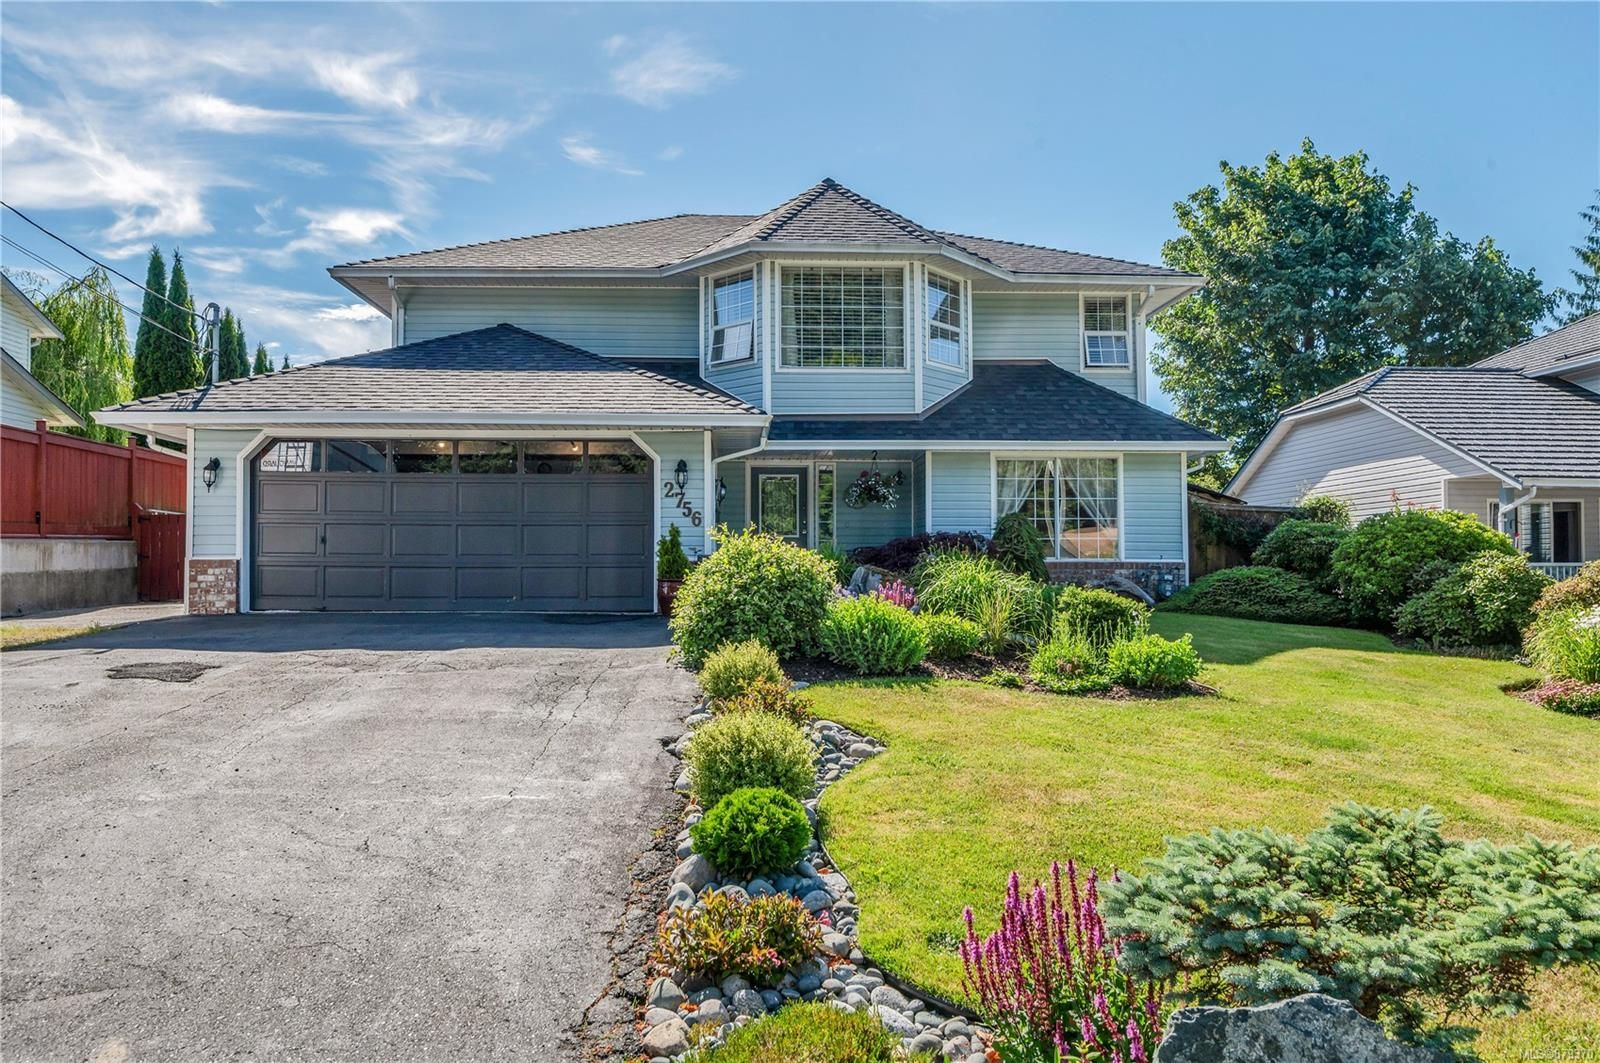 Main Photo: 2756 Apple Dr in : CR Willow Point House for sale (Campbell River)  : MLS®# 879370